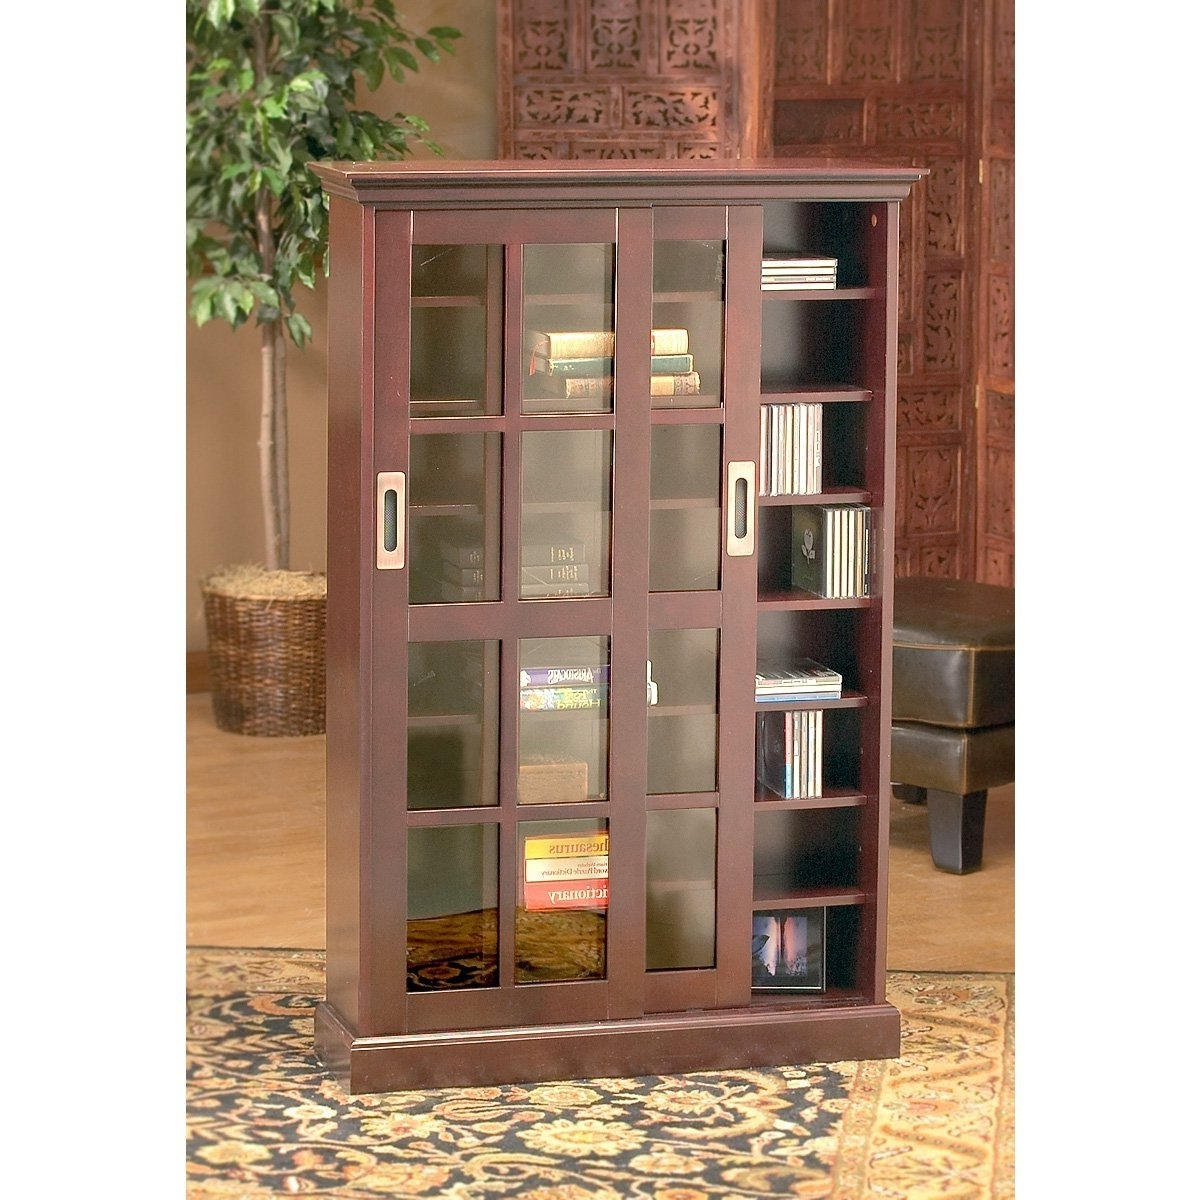 Amazon: Sliding Door Media Cabinet: Kitchen & Dining For Most Current Bookcases With Sliding Glass Doors (View 15 of 15)